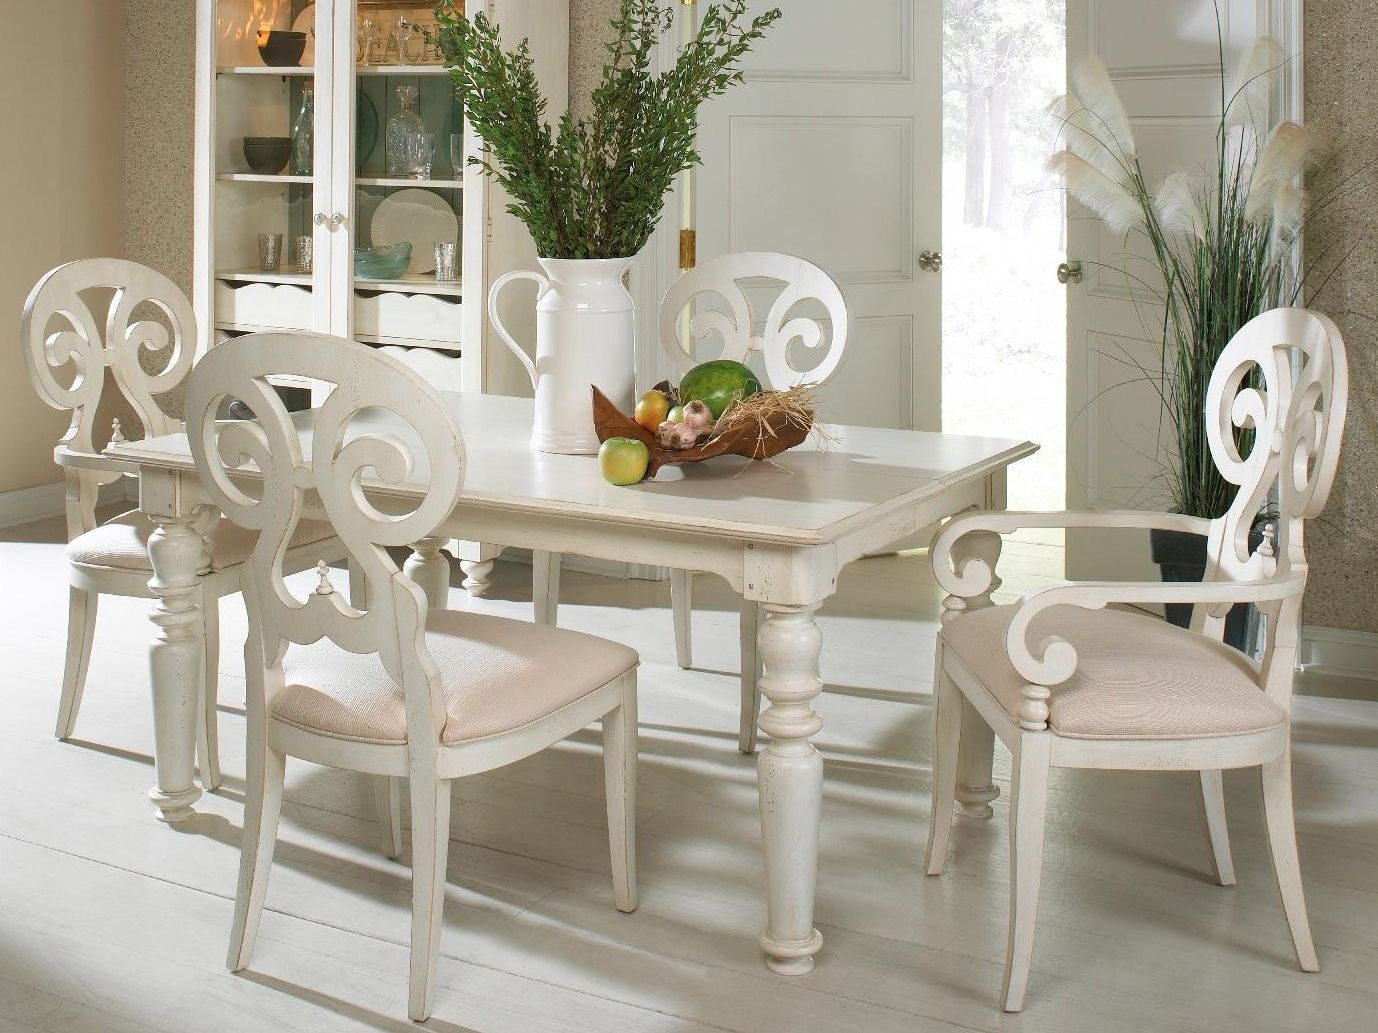 Fine Furniture Design Summer Home High Low Dining Table 1051 814